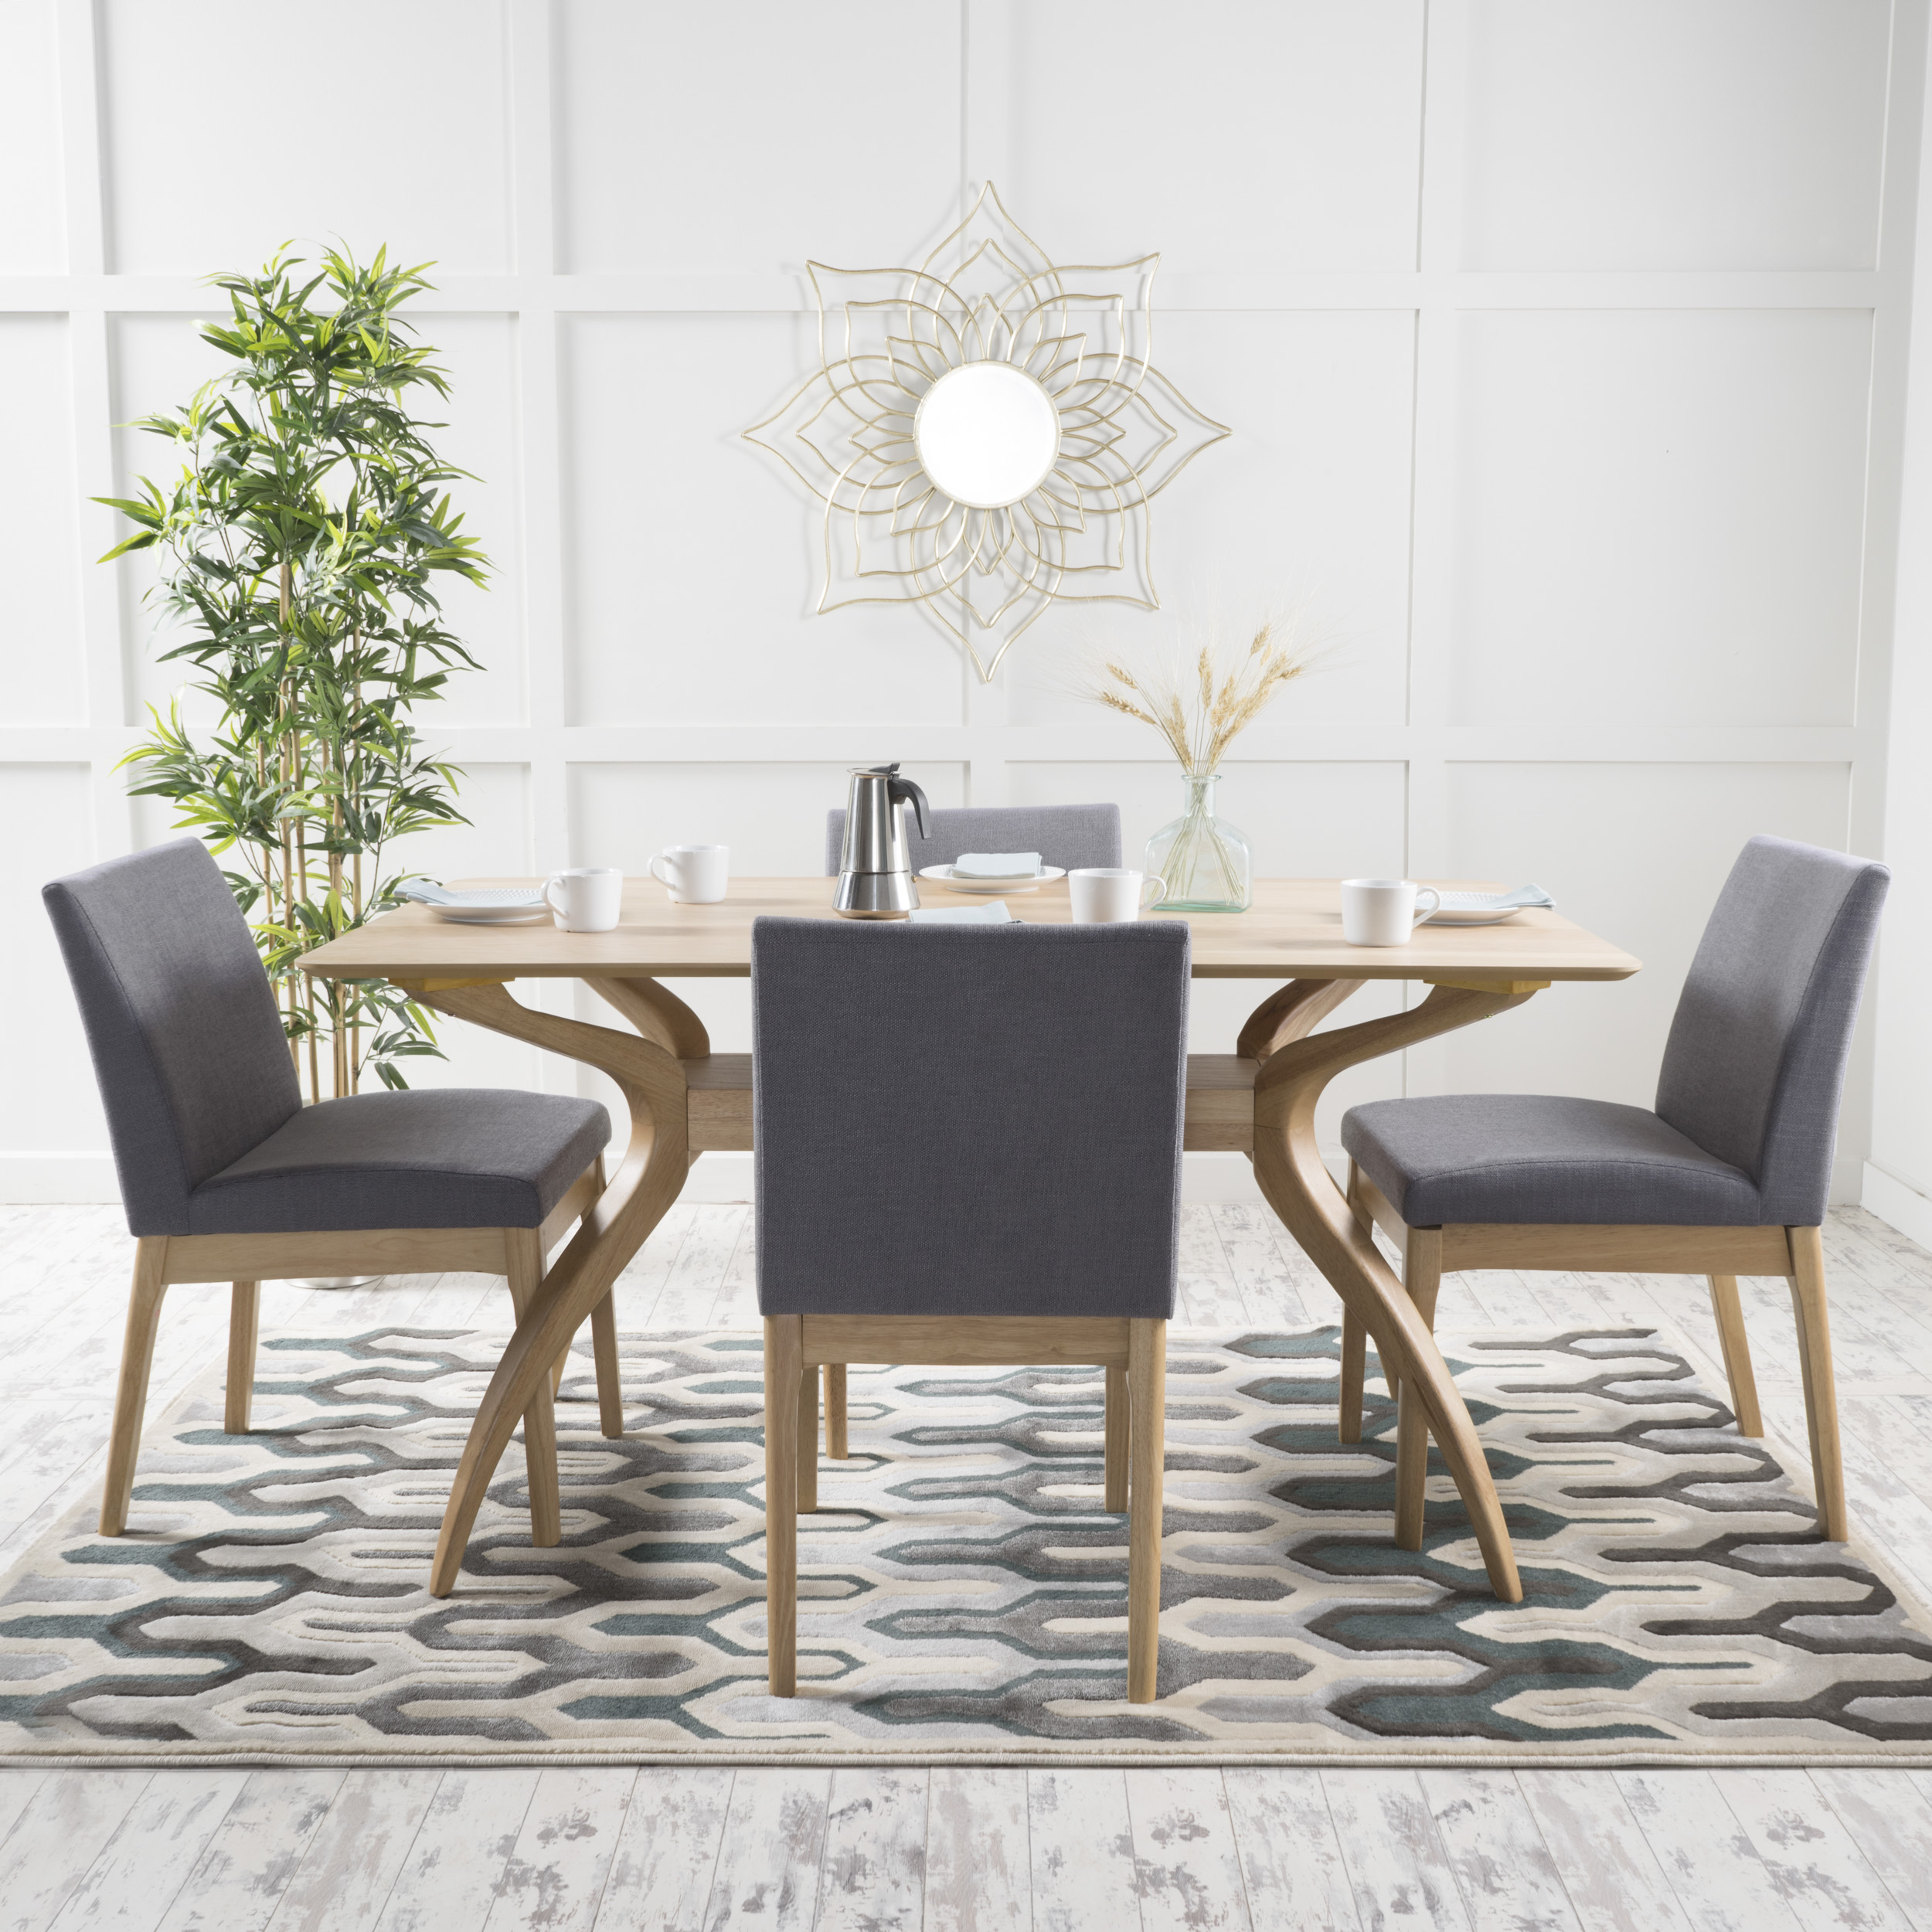 Mid Century Modern Dining Set: Noble House Caruso Mid-Century Modern Wood 5 Piece Dining